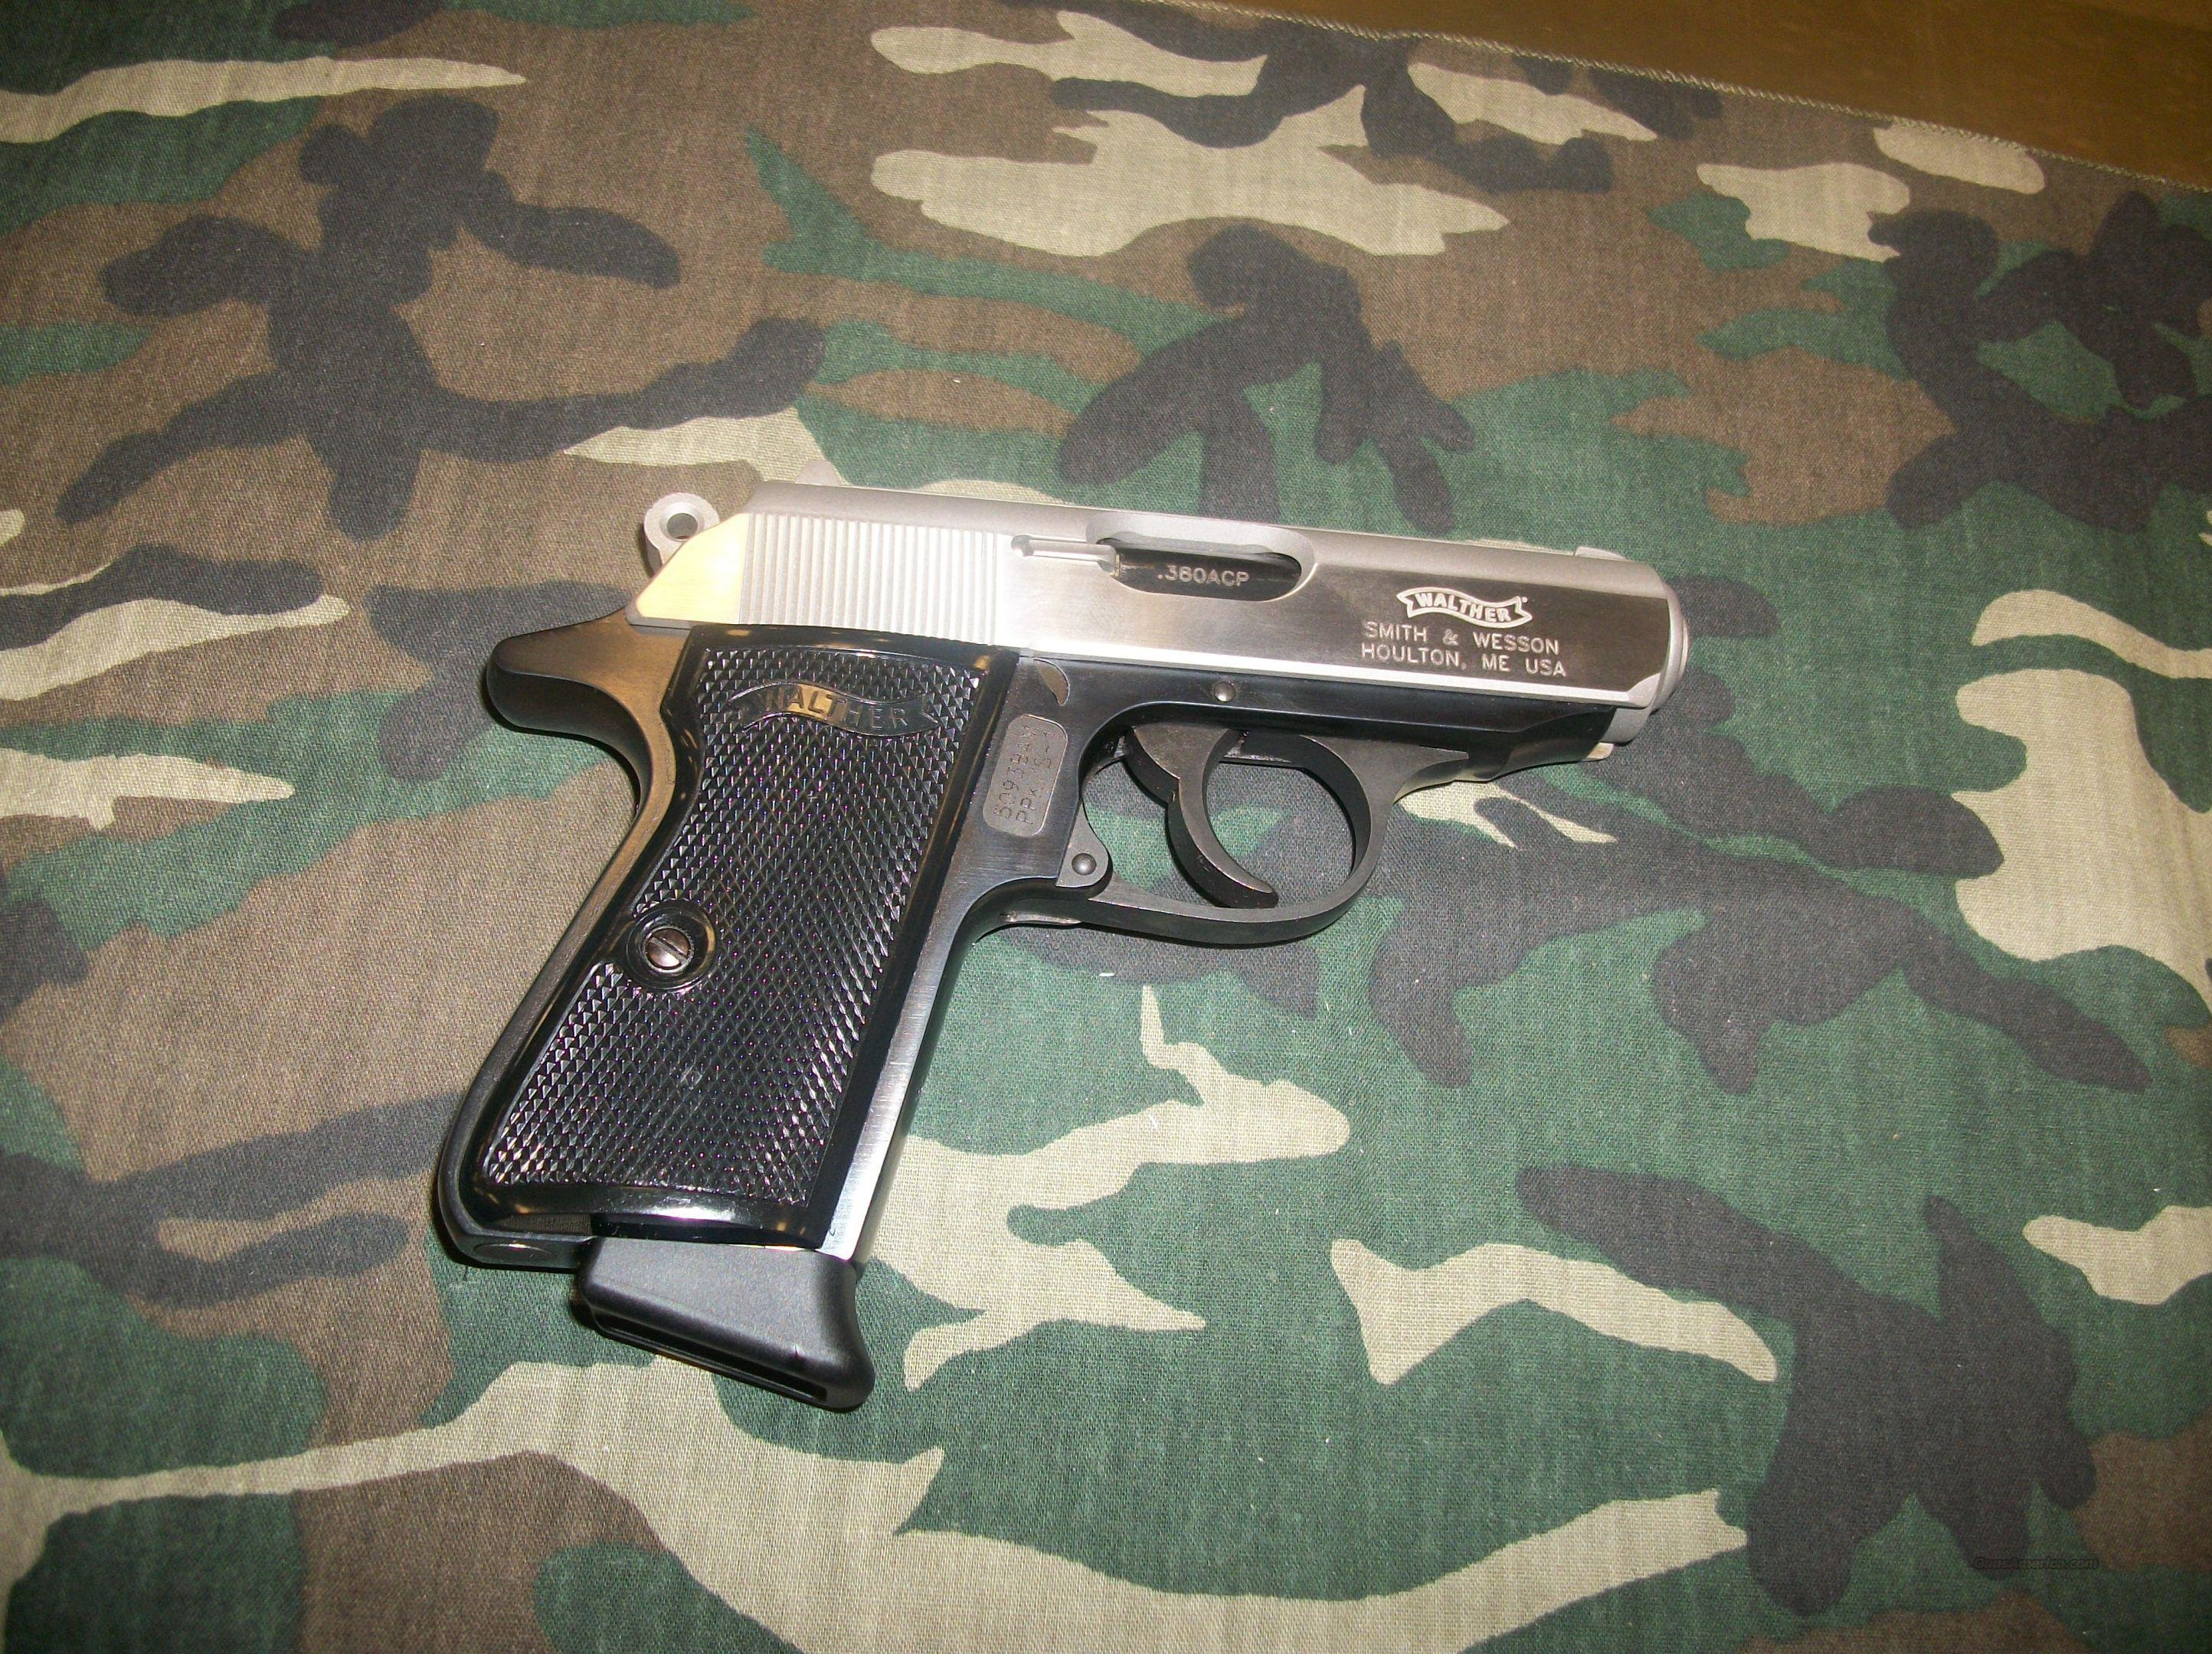 Walther PPK/S 380 TWO TONE  Guns > Pistols > Walther Pistols > Post WWII > PP Series